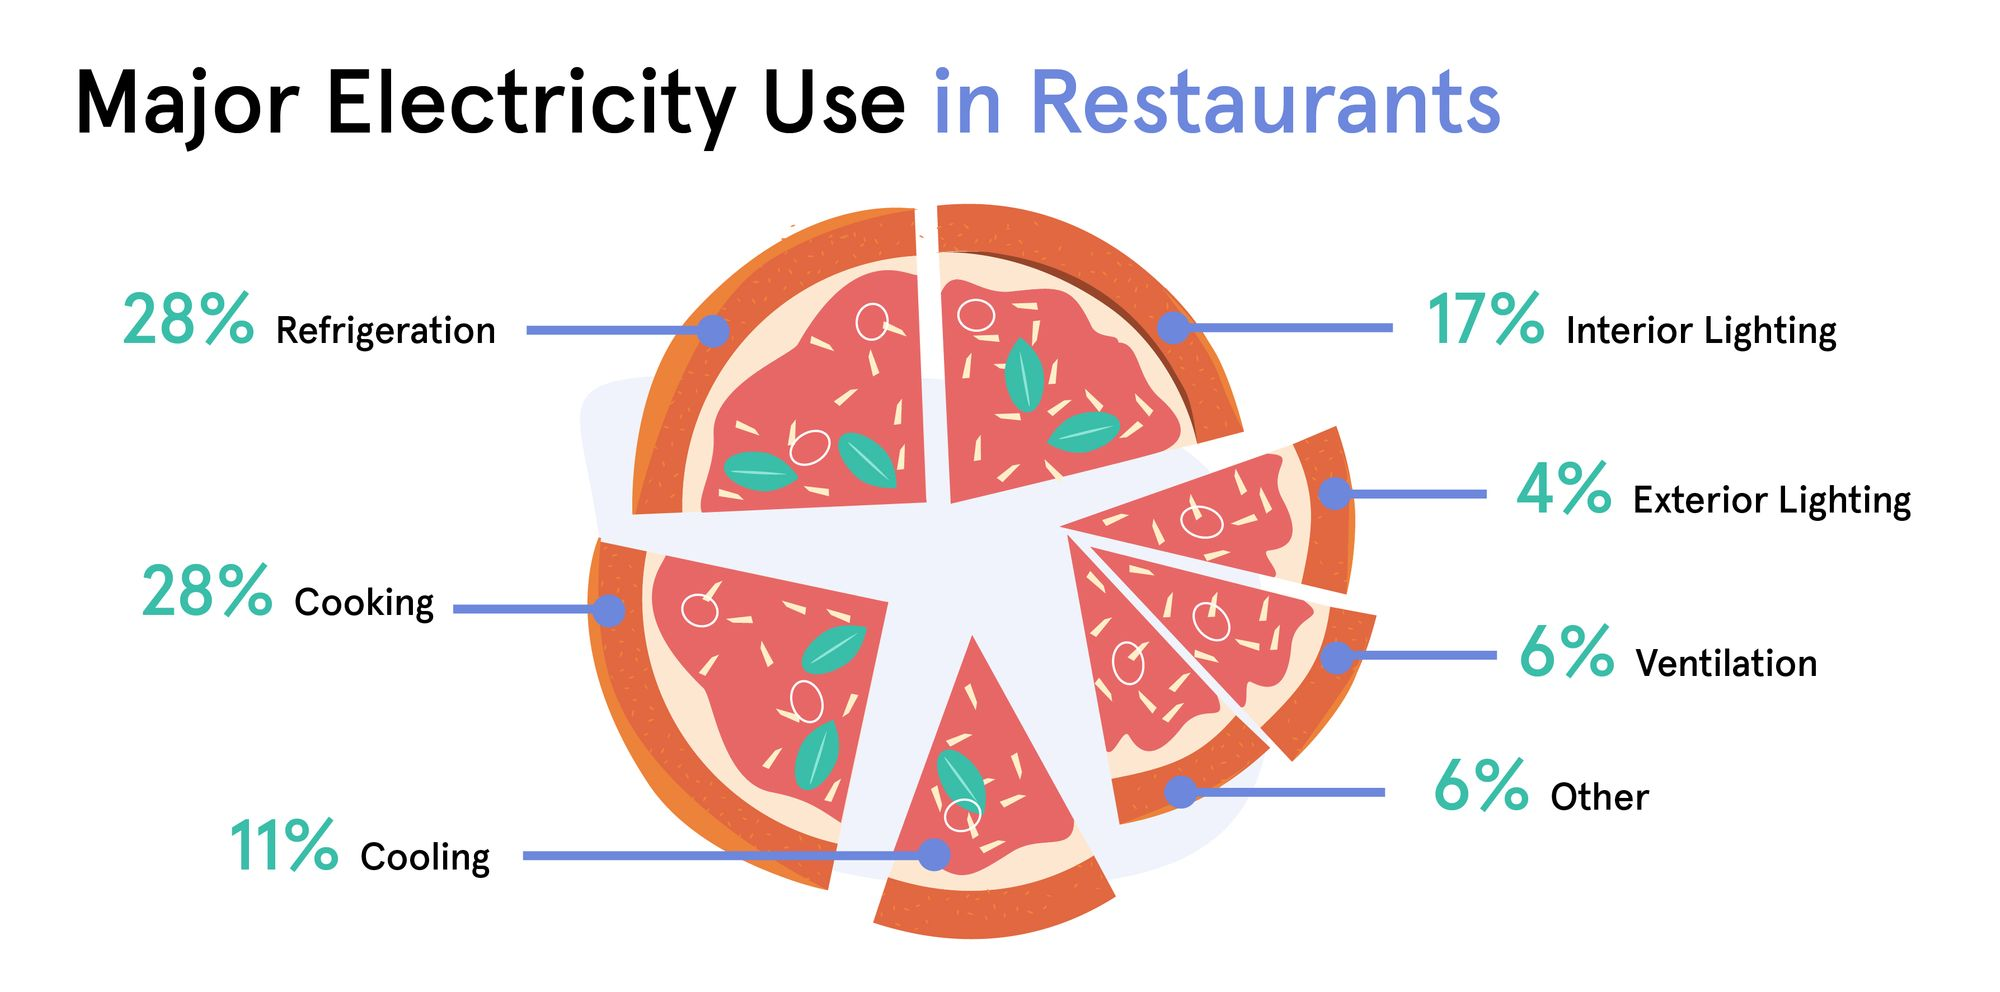 Major Electricity Use in Restaurants